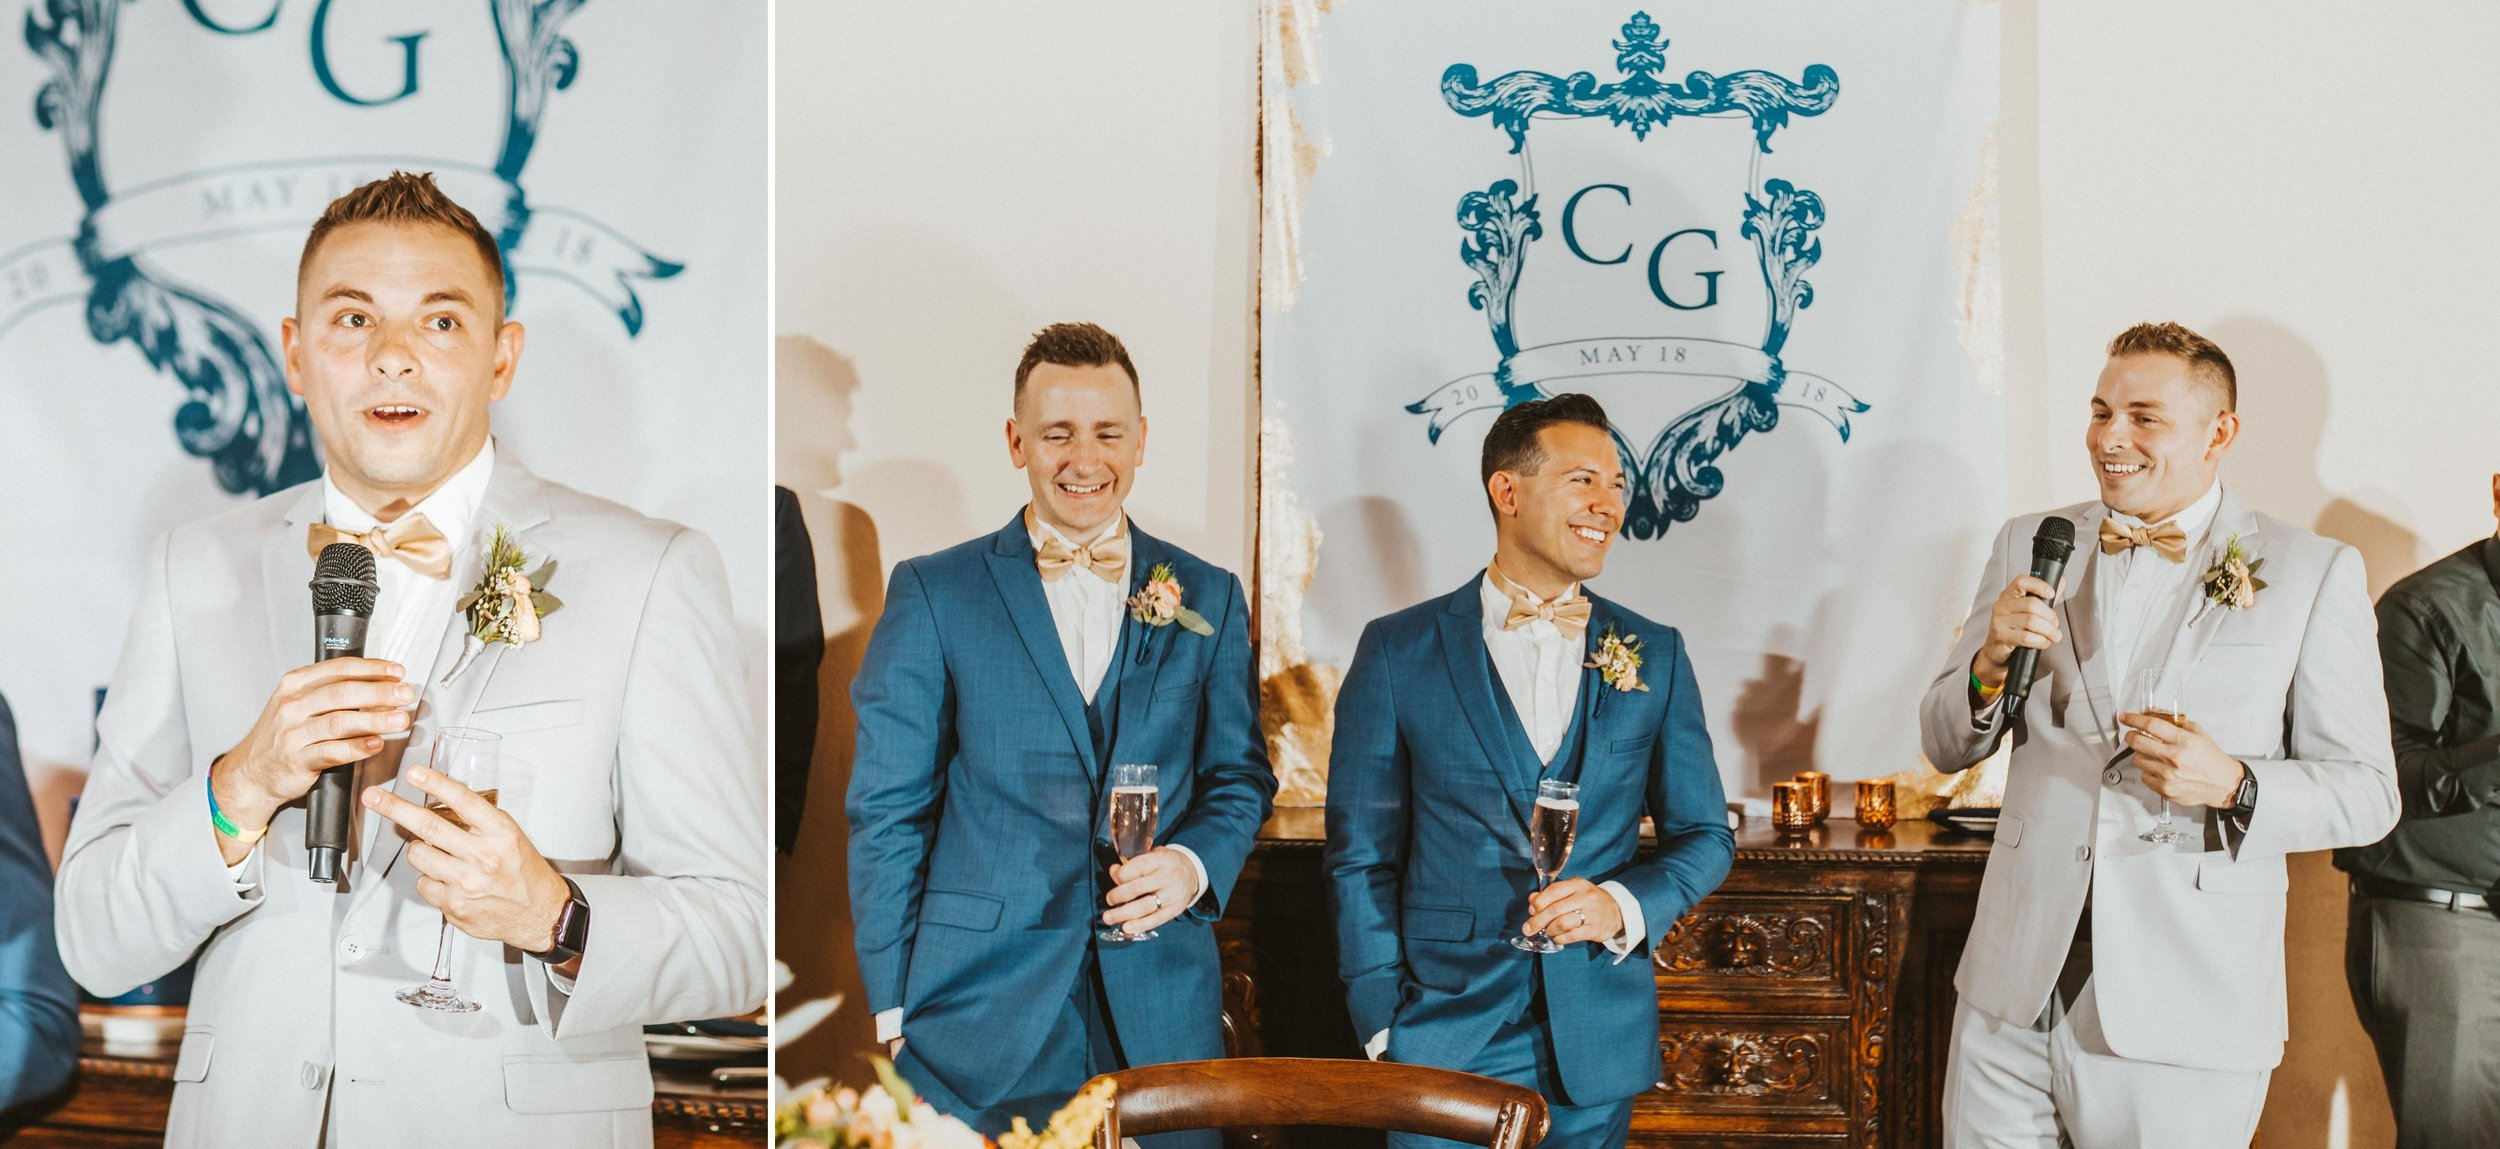 Navy & Copper Casa Feliz Wedding- Travel Inspired LGBT Groom + Groom Wedding- via ShainaDeCiryan.com24.jpg